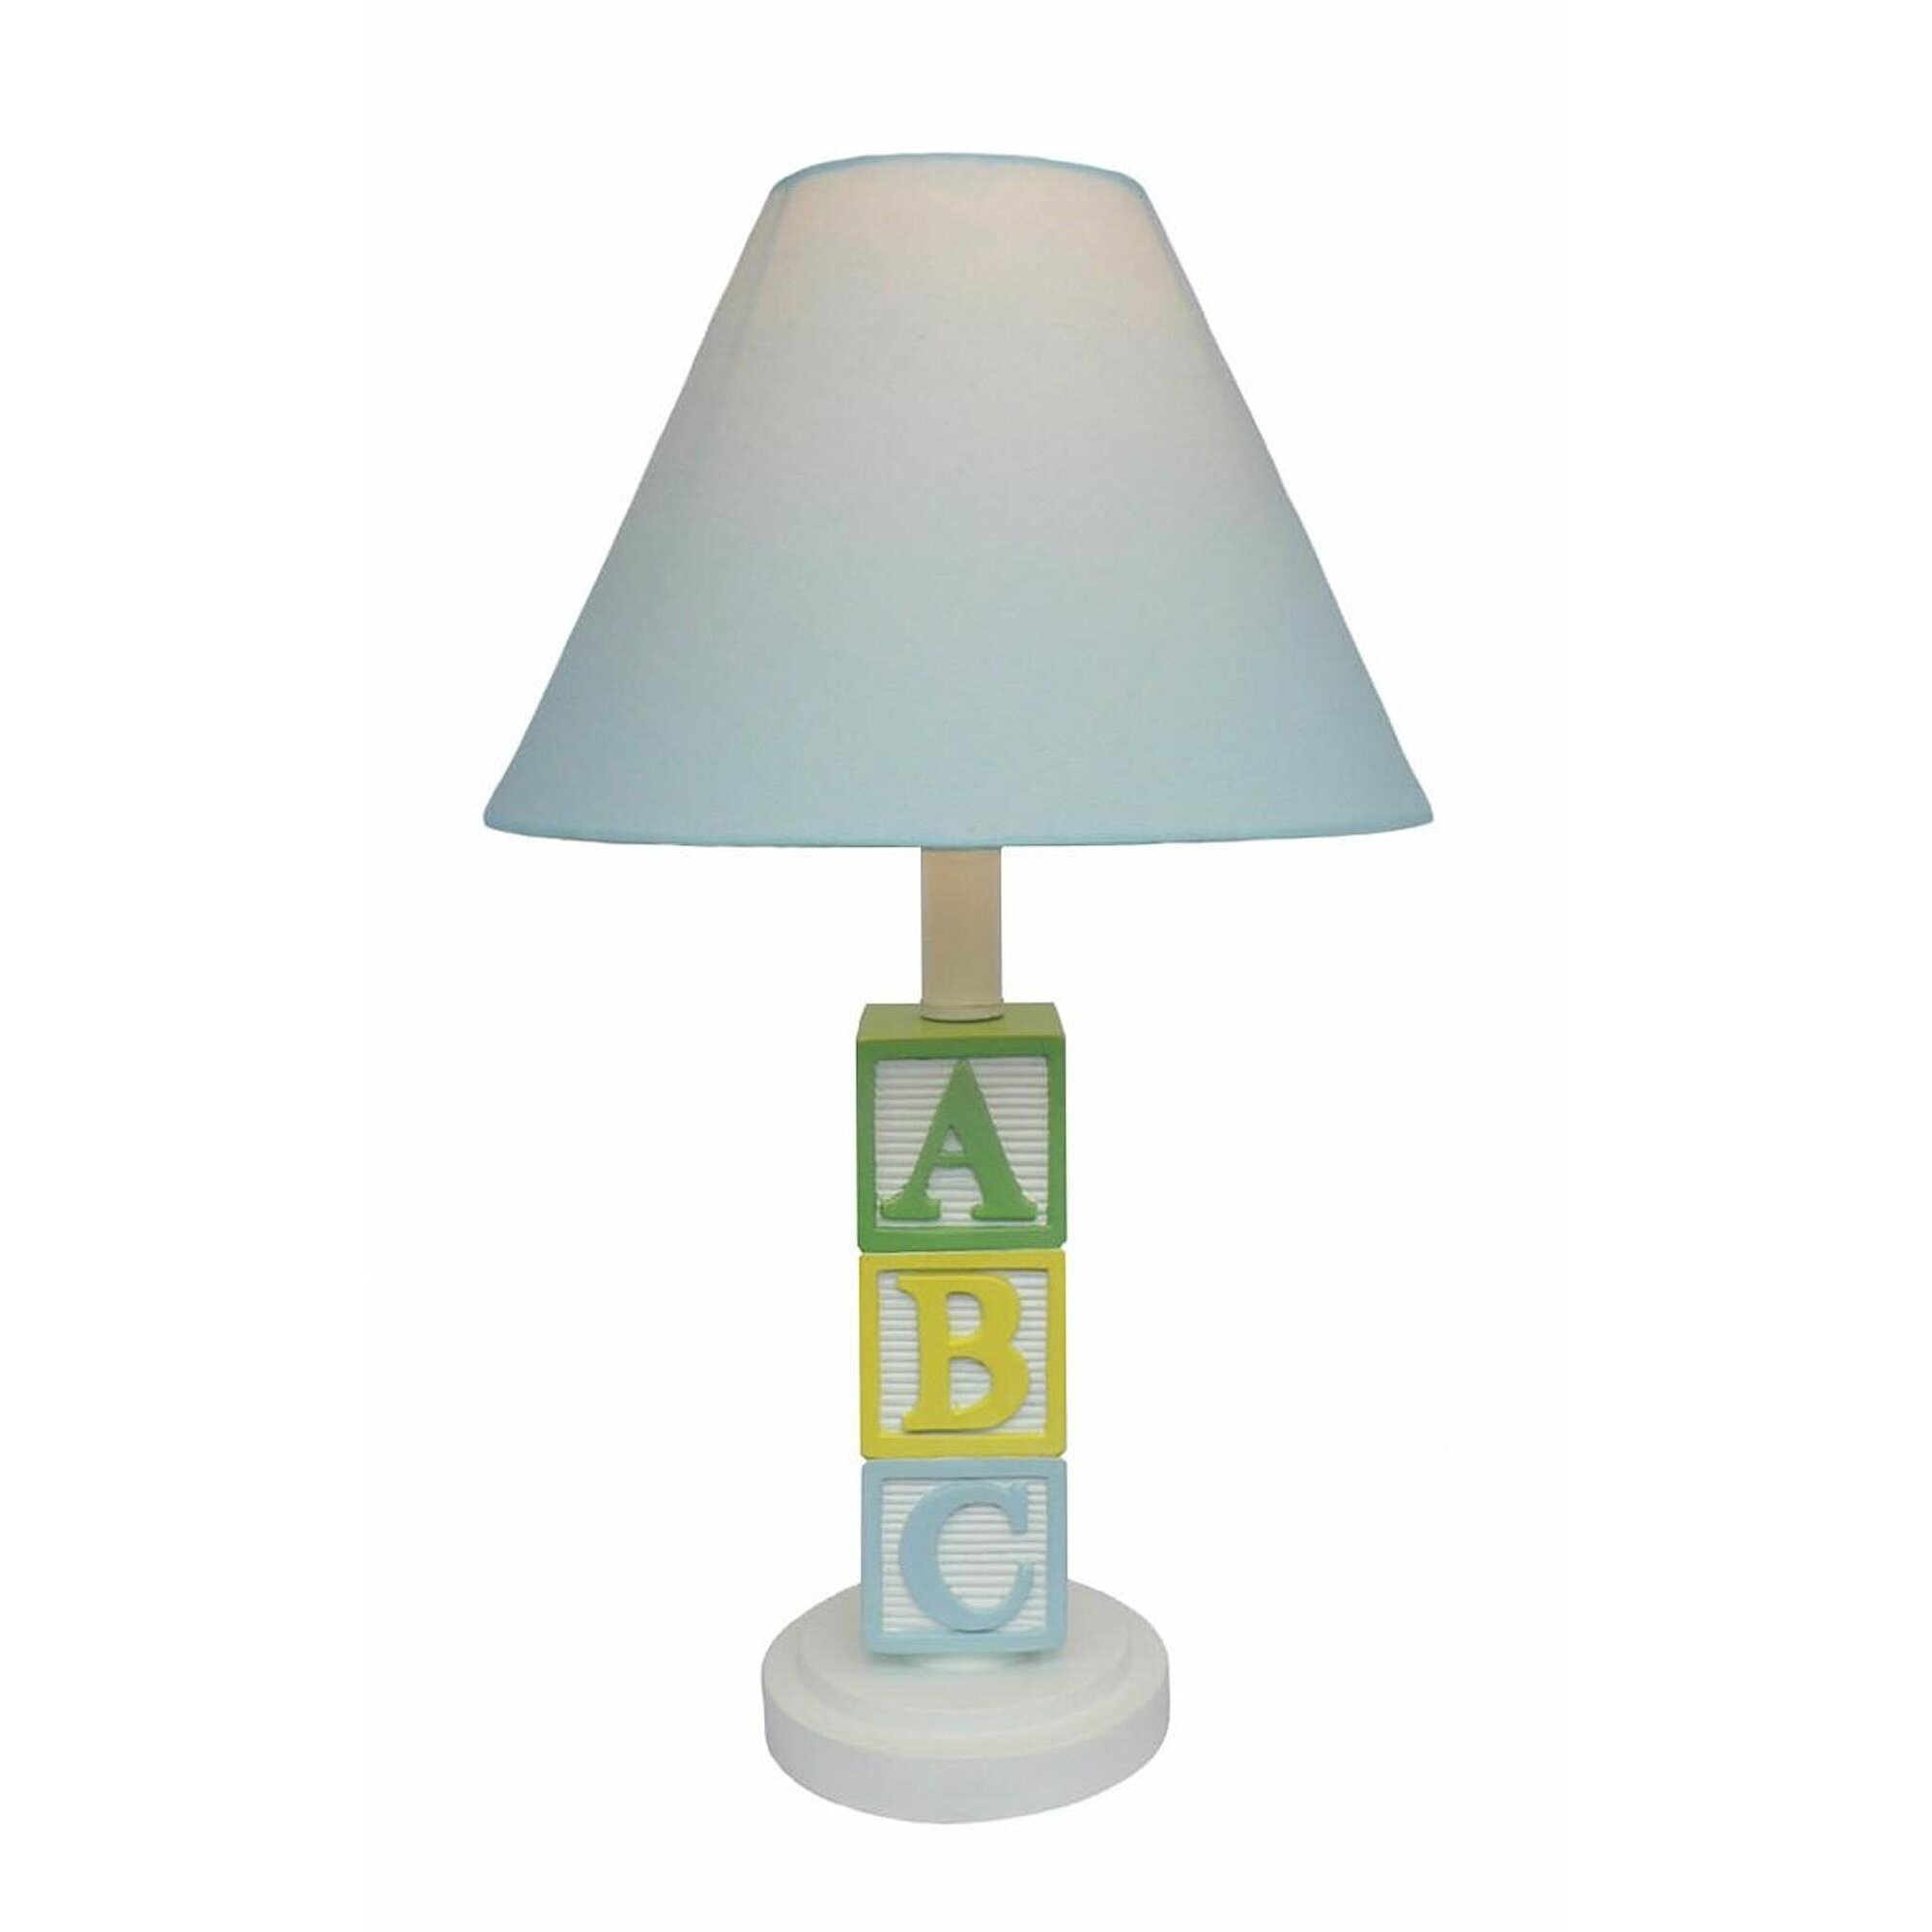 Creative motion abc character 17 h table lamp with empire shade reviews - Creative lamp shades ...